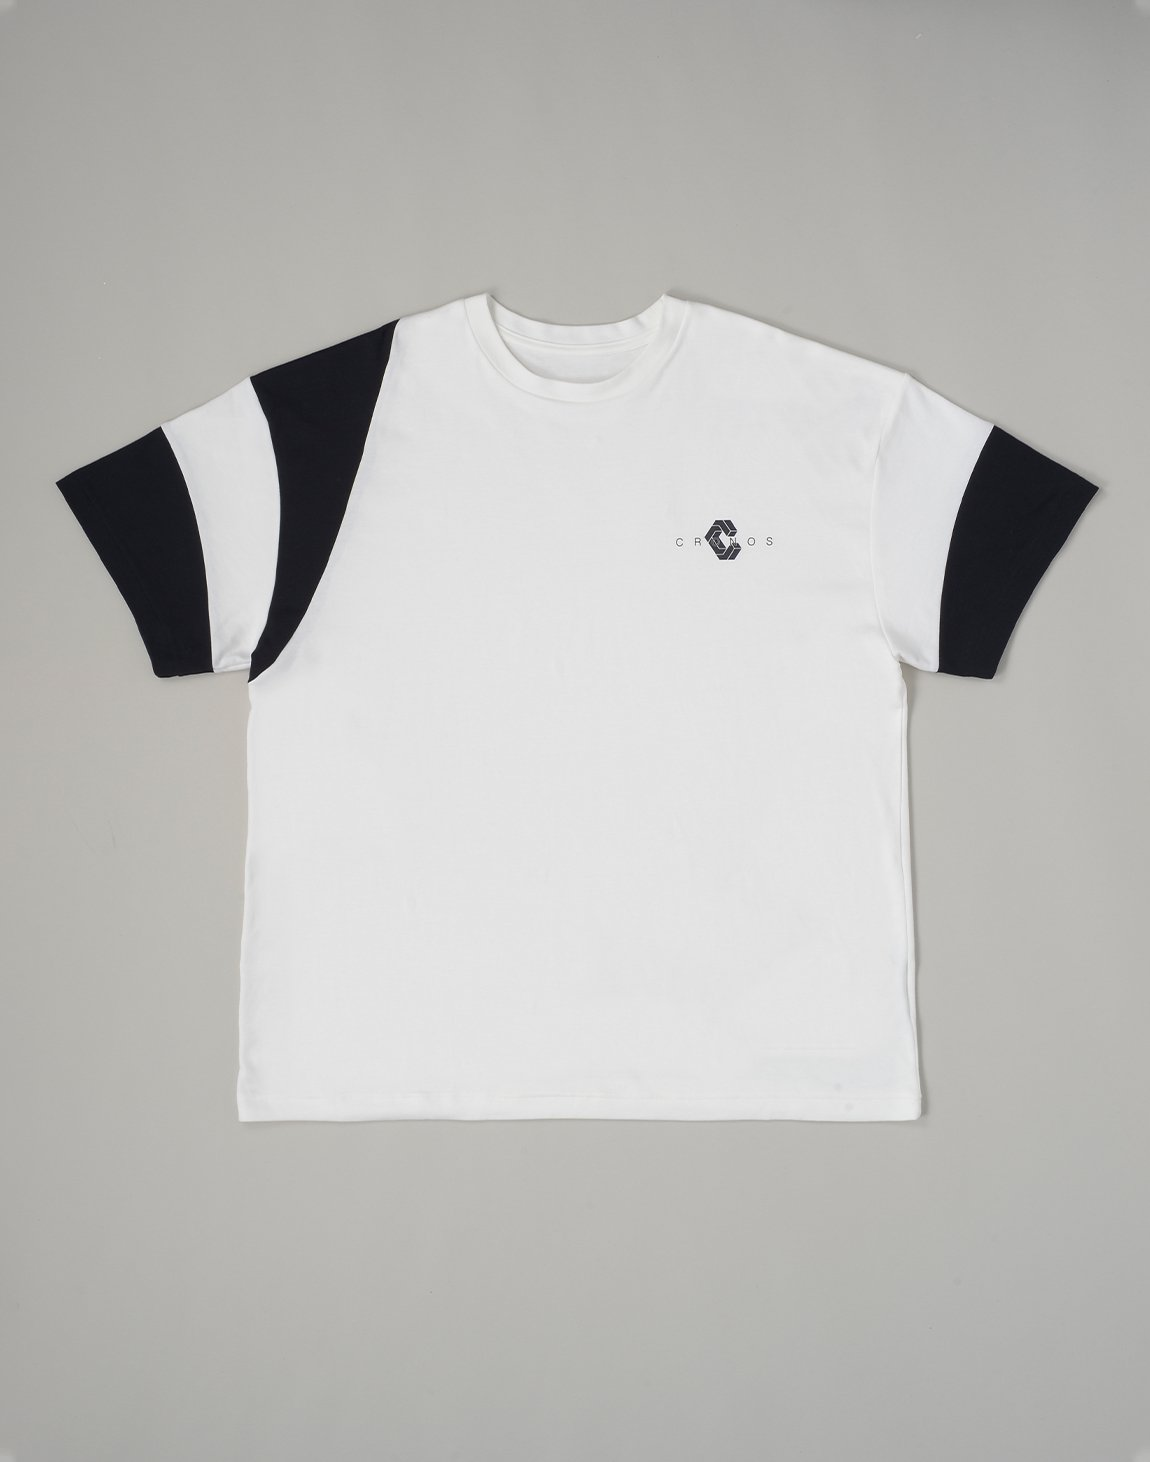 <img class='new_mark_img1' src='https://img.shop-pro.jp/img/new/icons55.gif' style='border:none;display:inline;margin:0px;padding:0px;width:auto;' />CRONOS BICEPS LINE OVERSIZE T-SHIRTS【WHITE】